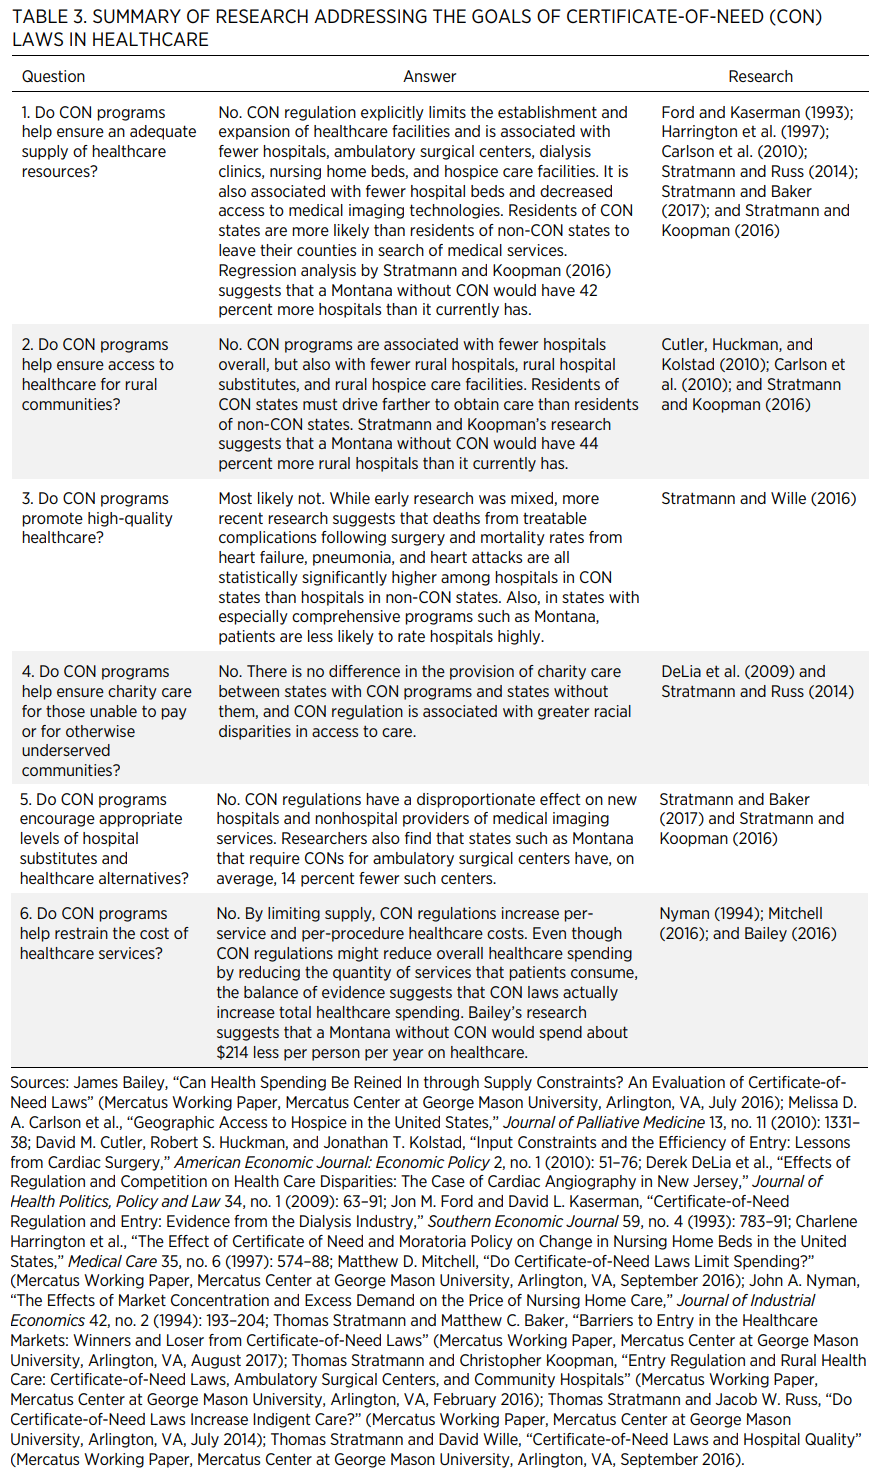 TABLE 3. SUMMARY OF RESEARCH ADDRESSING THE GOALS OF CERTIFICATE-OF-NEED (CON) LAWS IN HEALTHCARE QuestionAnswerResearch 1. Do CON programs help ensure an adequate supply of healthcare resources?No. CON regulation explicitly limits the establishment an